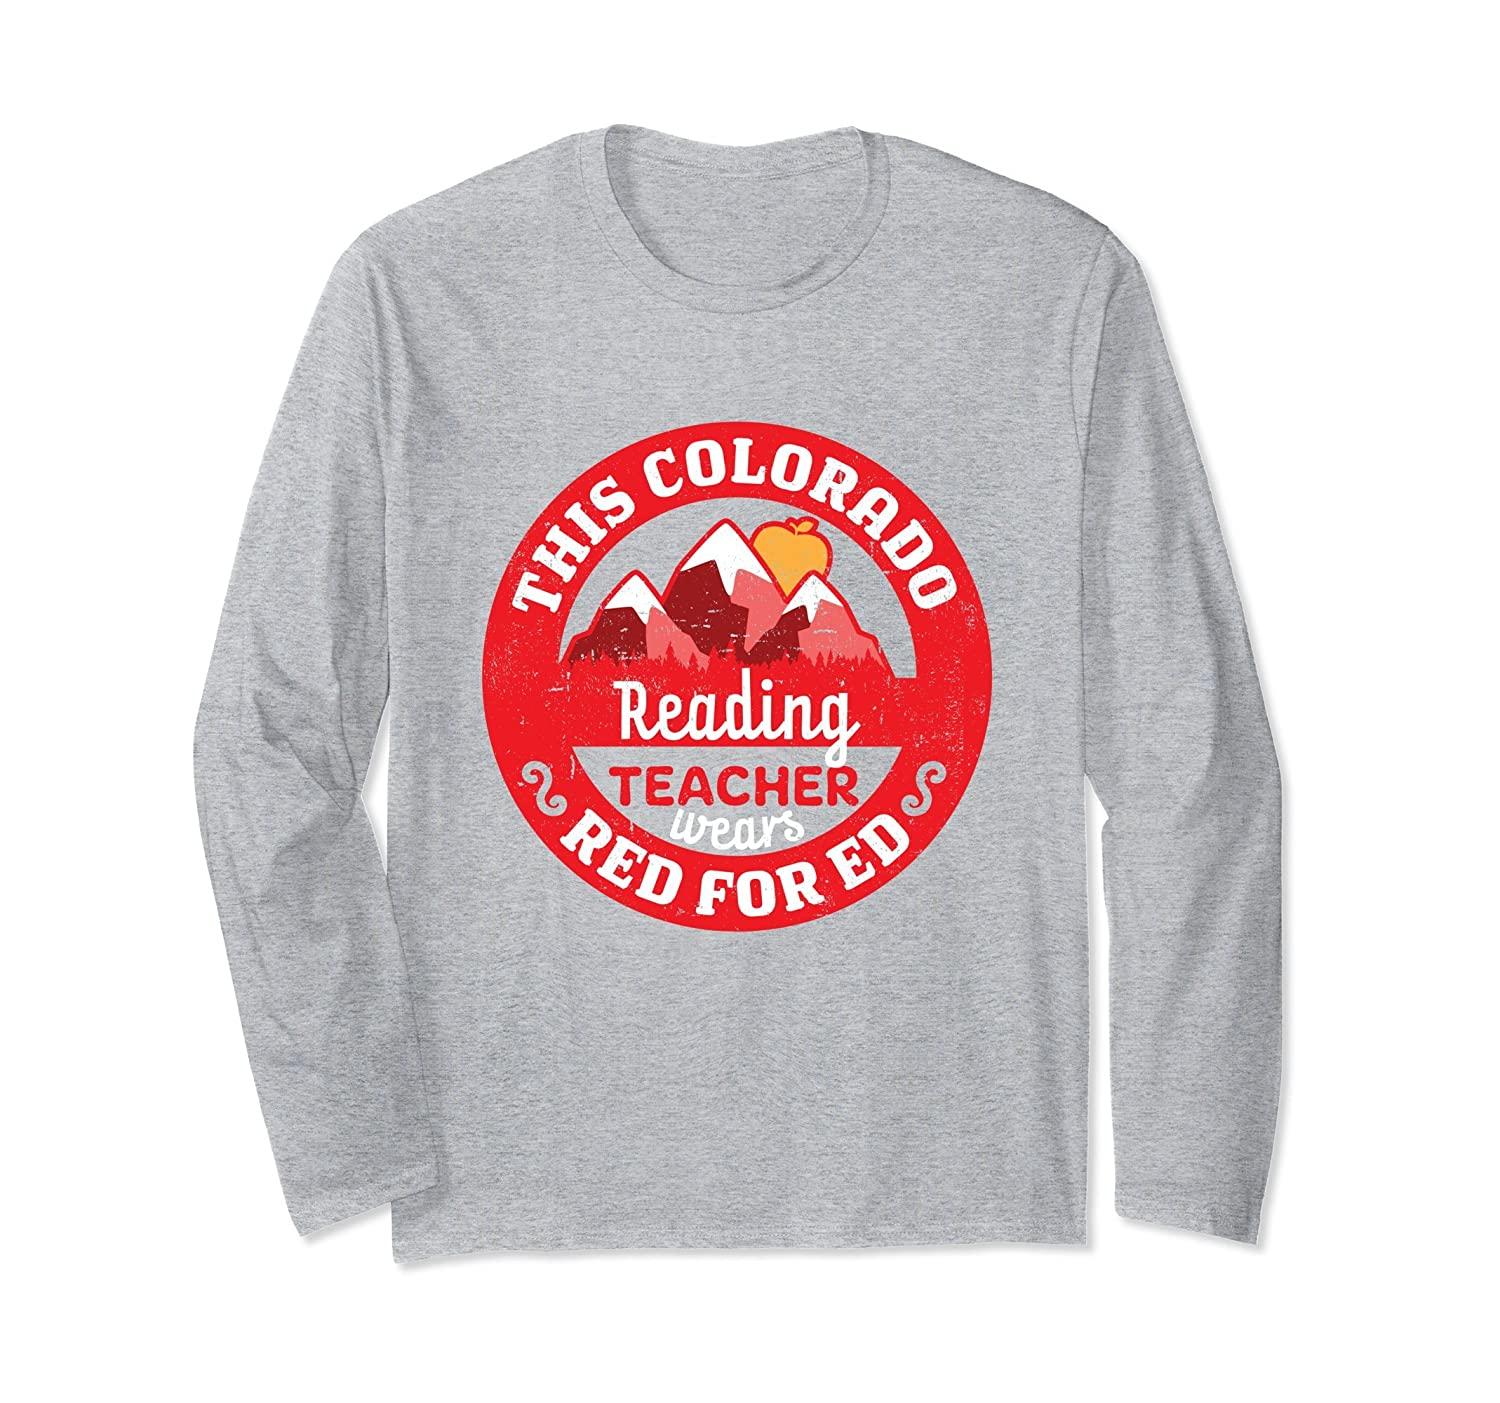 ca814dacecb2 Colorado Red For Ed Long Sleeve Shirt Reading Teacher-prm – Paramatee